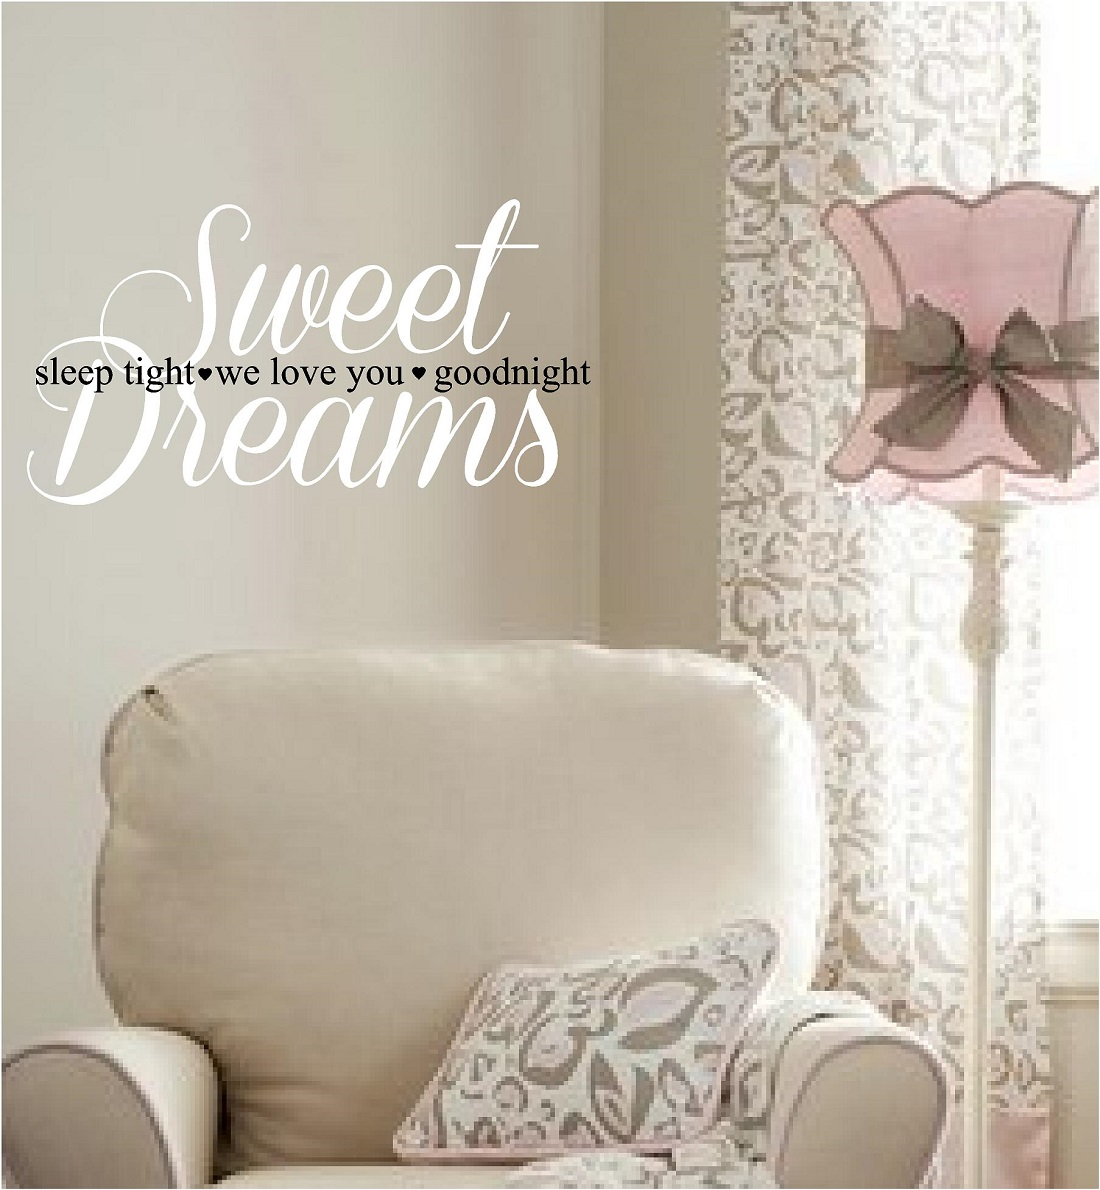 Nursery Wall Quotes - Sweet Dreams Sleep Tight We Love You